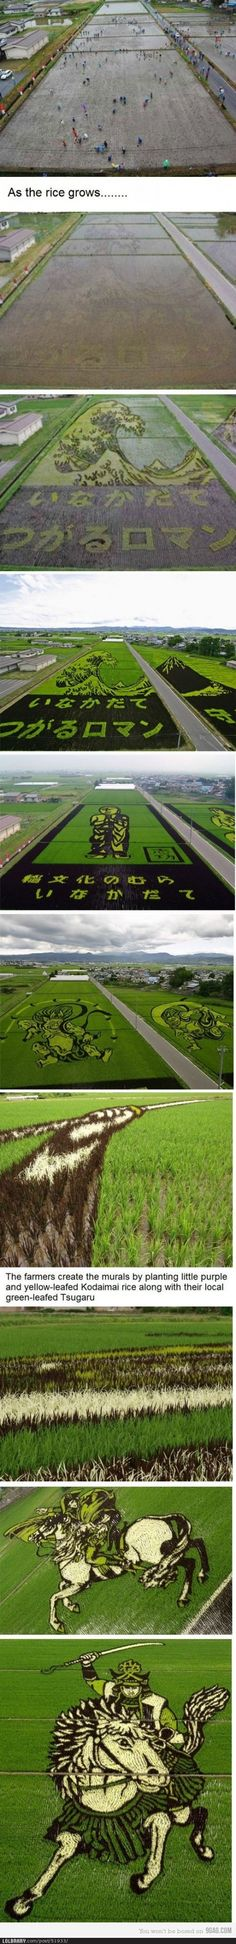 Japanese Rice Field Art - not funny, just really COOL!